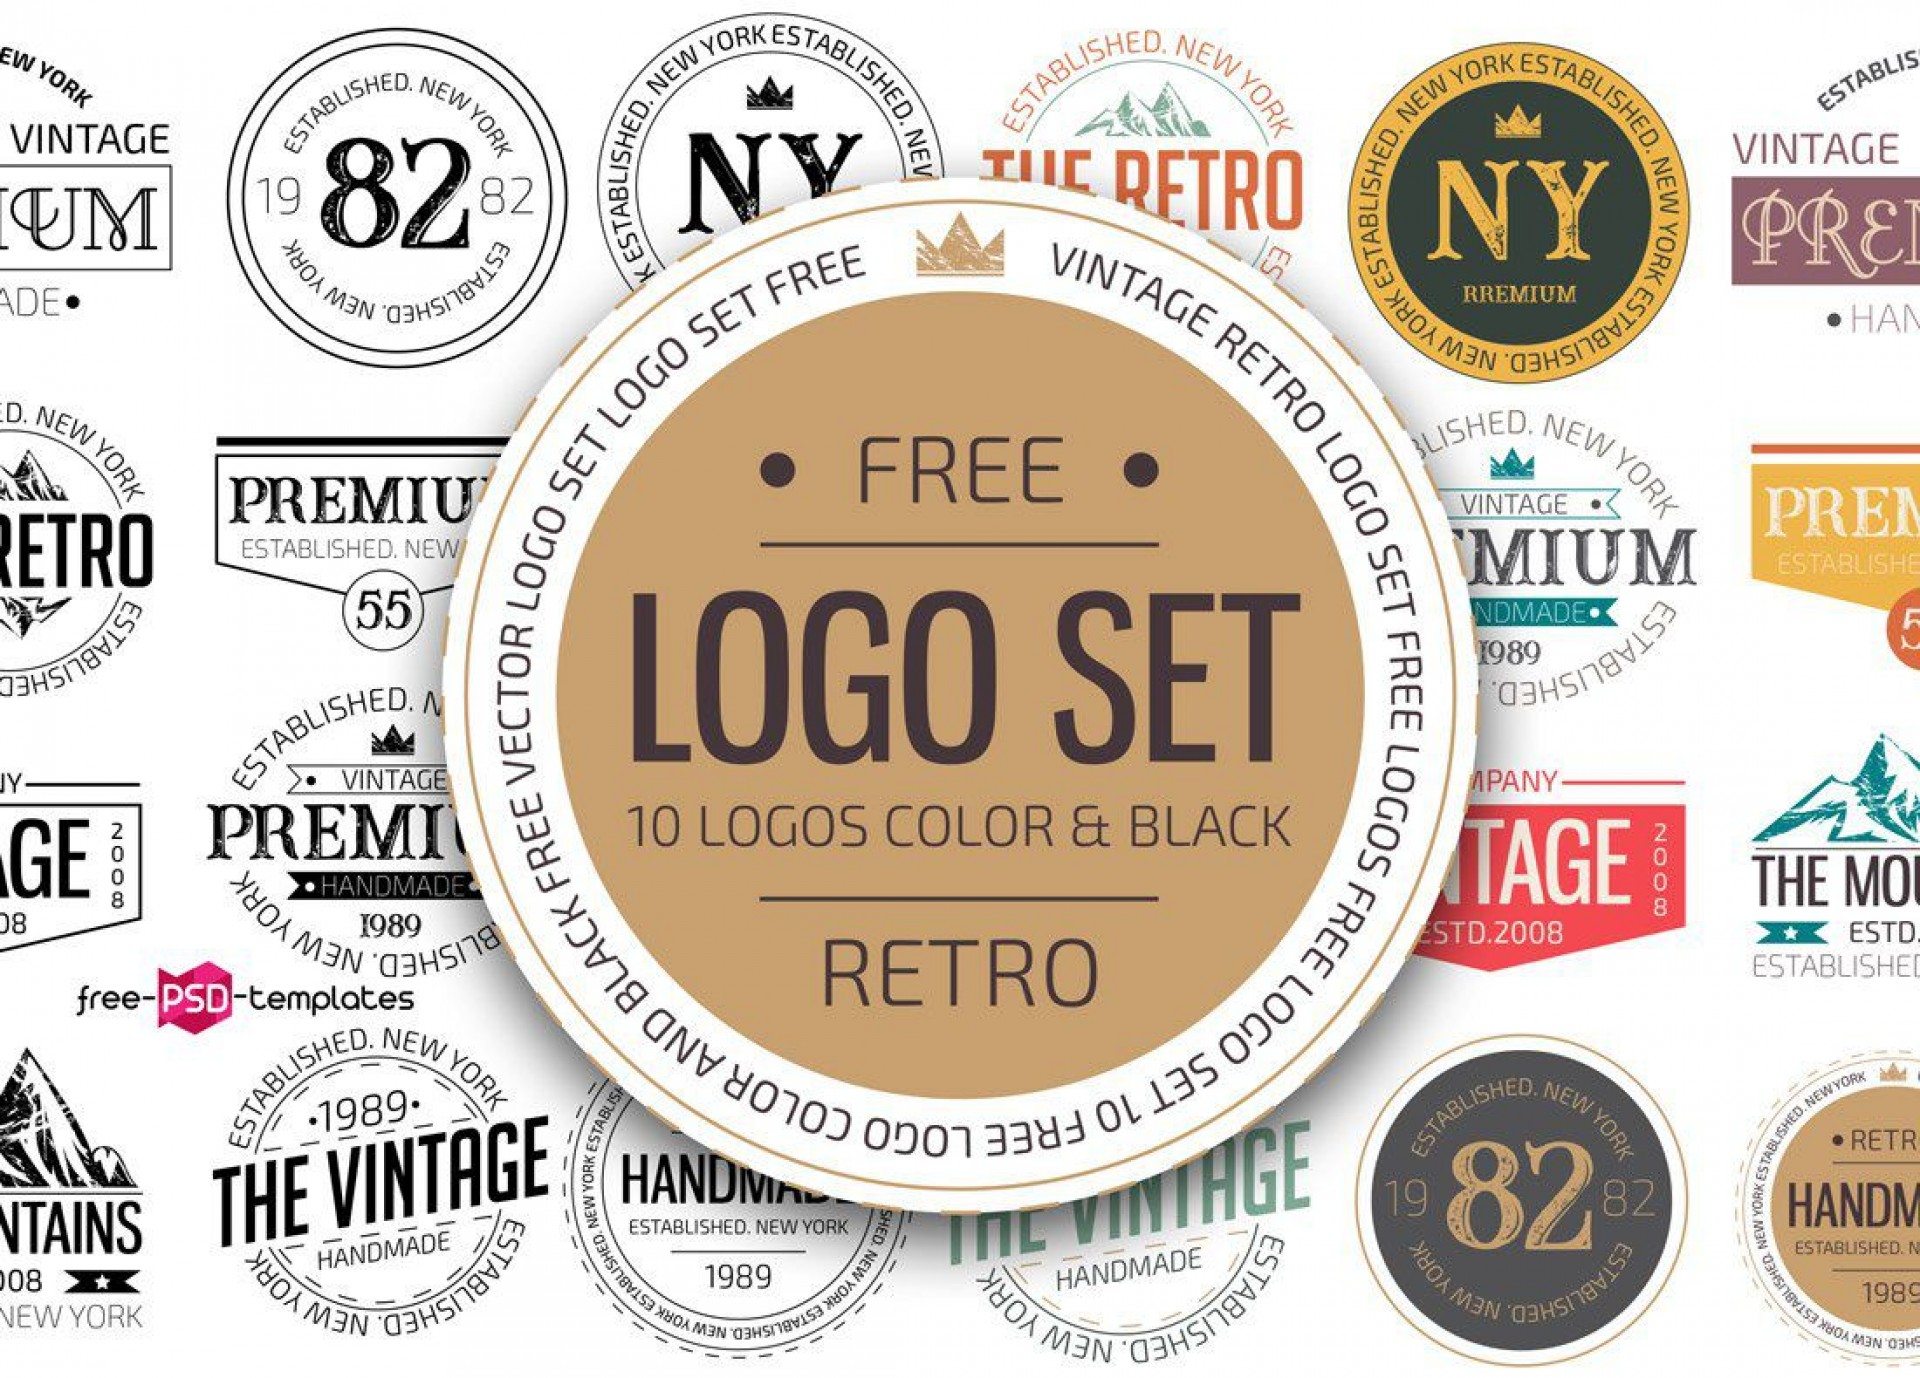 007 Staggering Free Psd Logo Template Concept  Templates Design For Photographer Dj1920